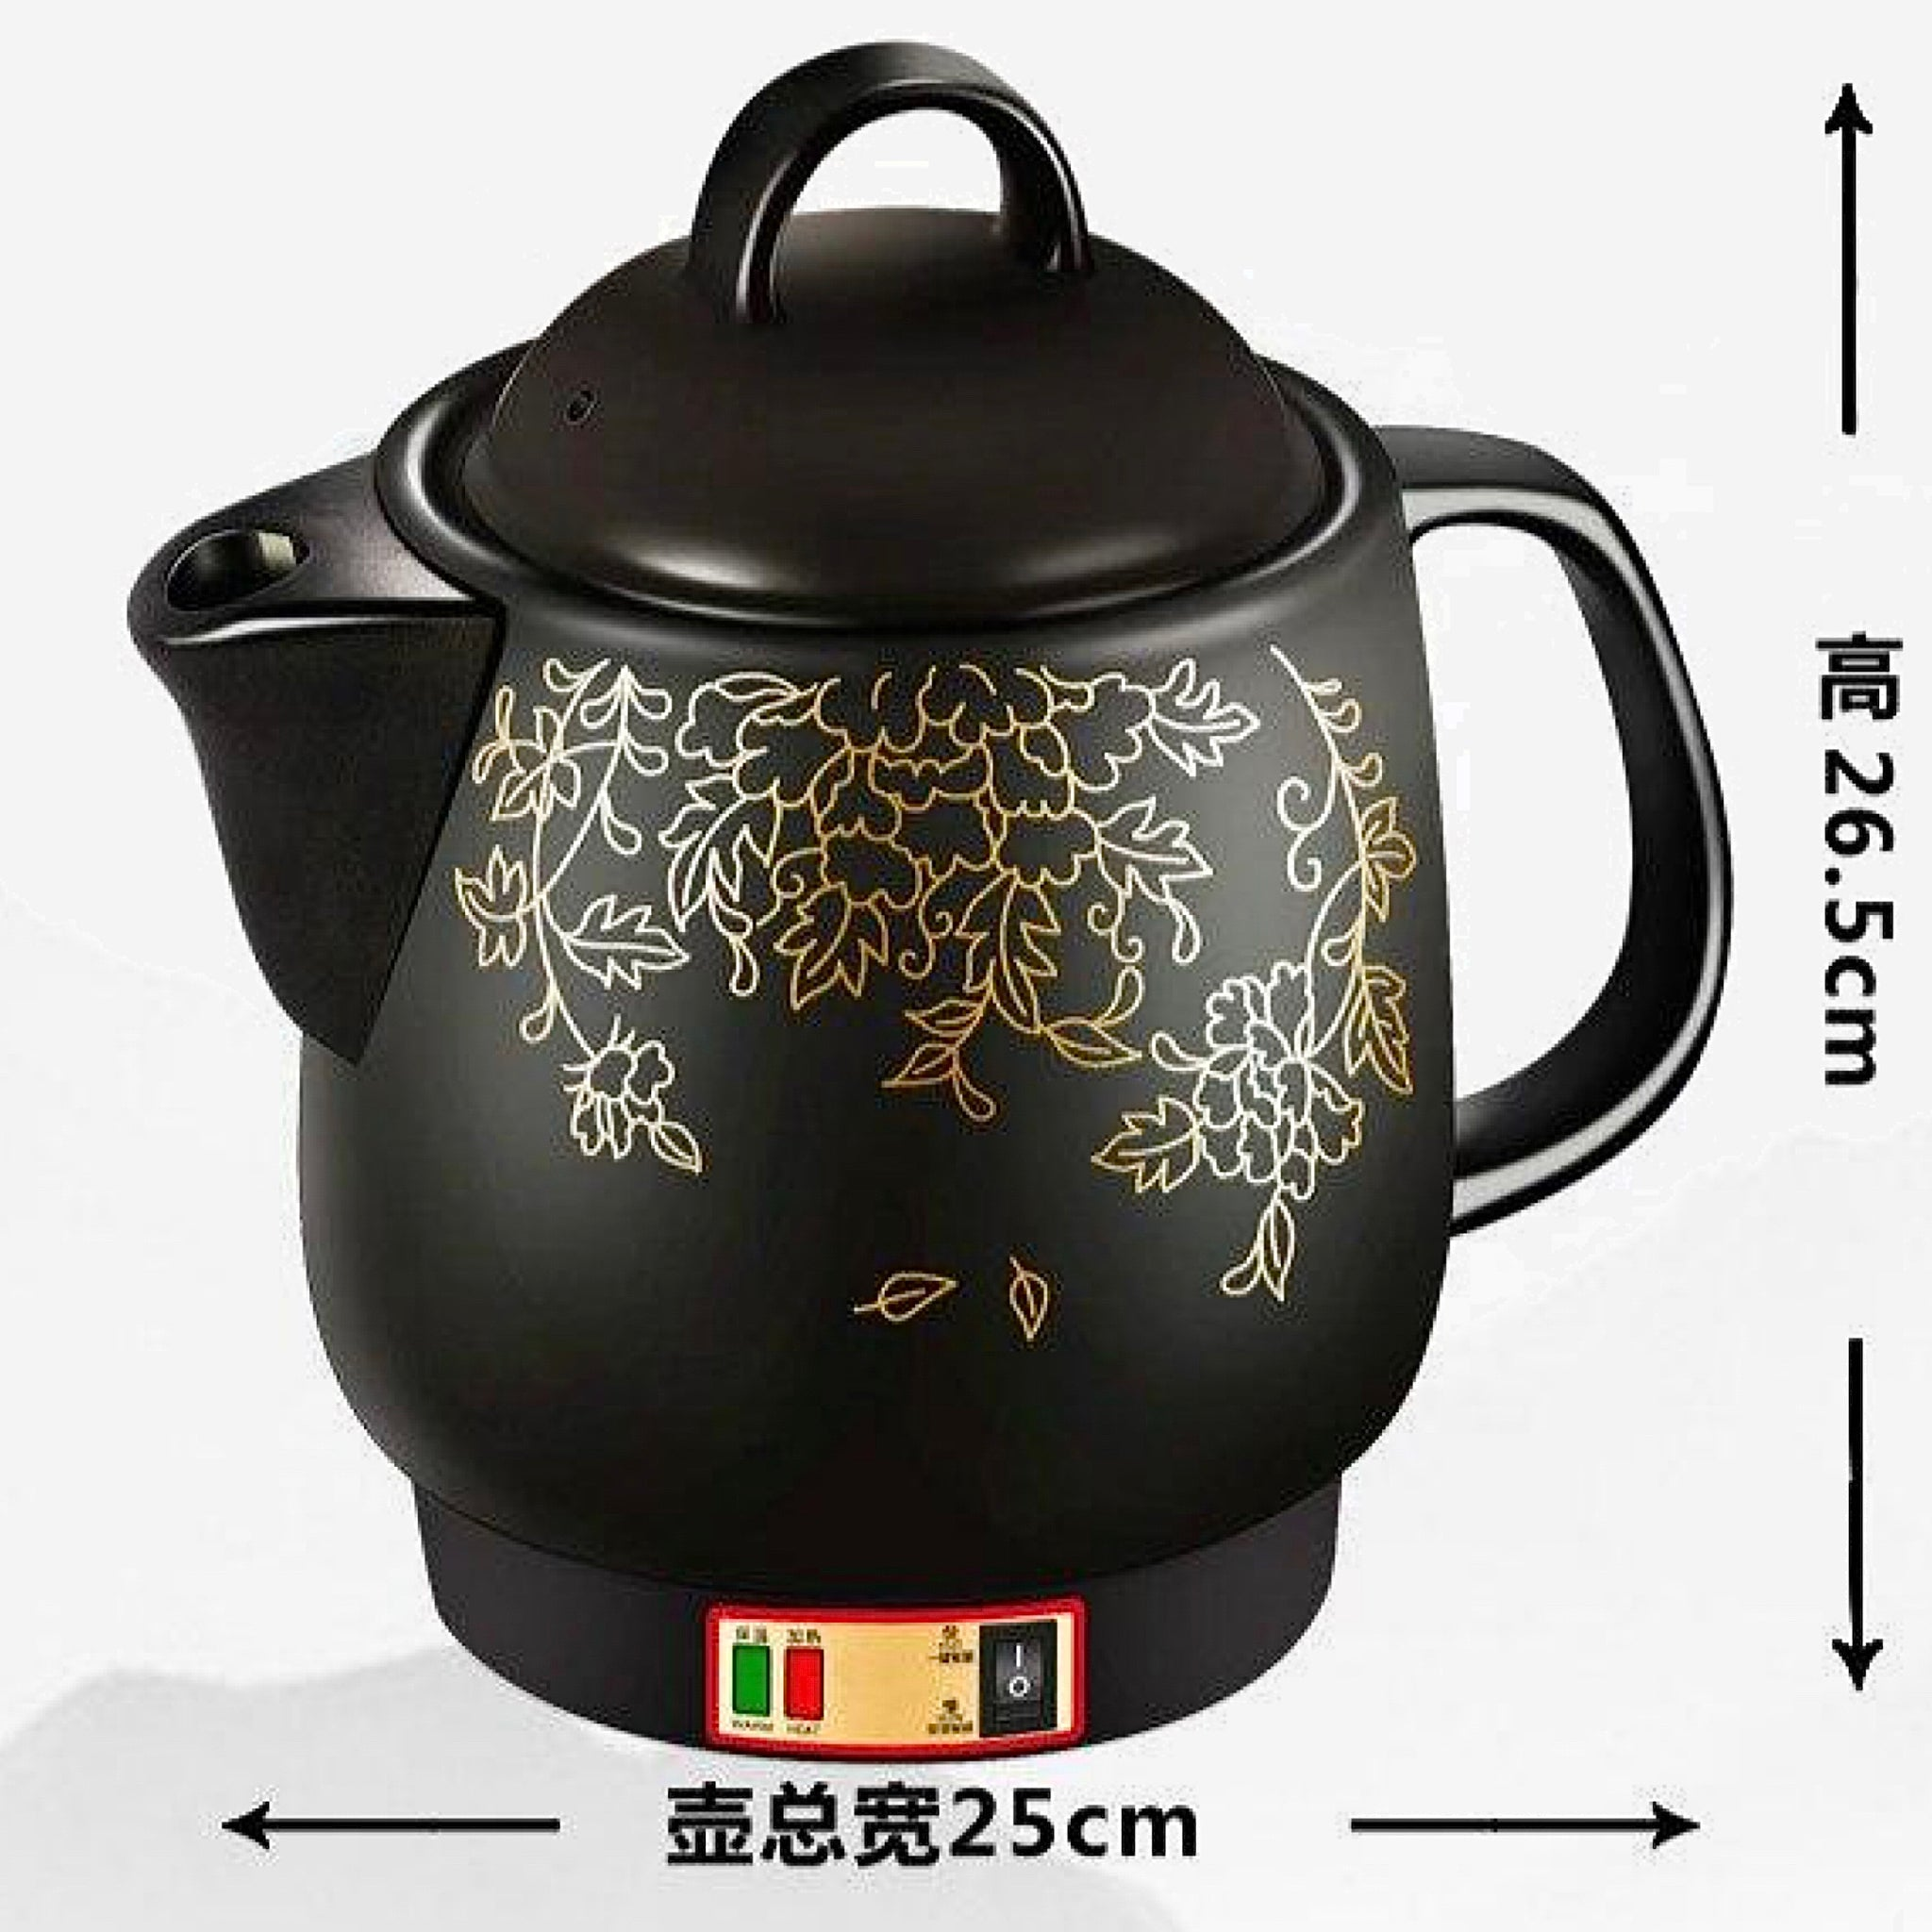 Electric kettle Full automatic decoction of Chinese medicine pot ceramic casserole Size Chart